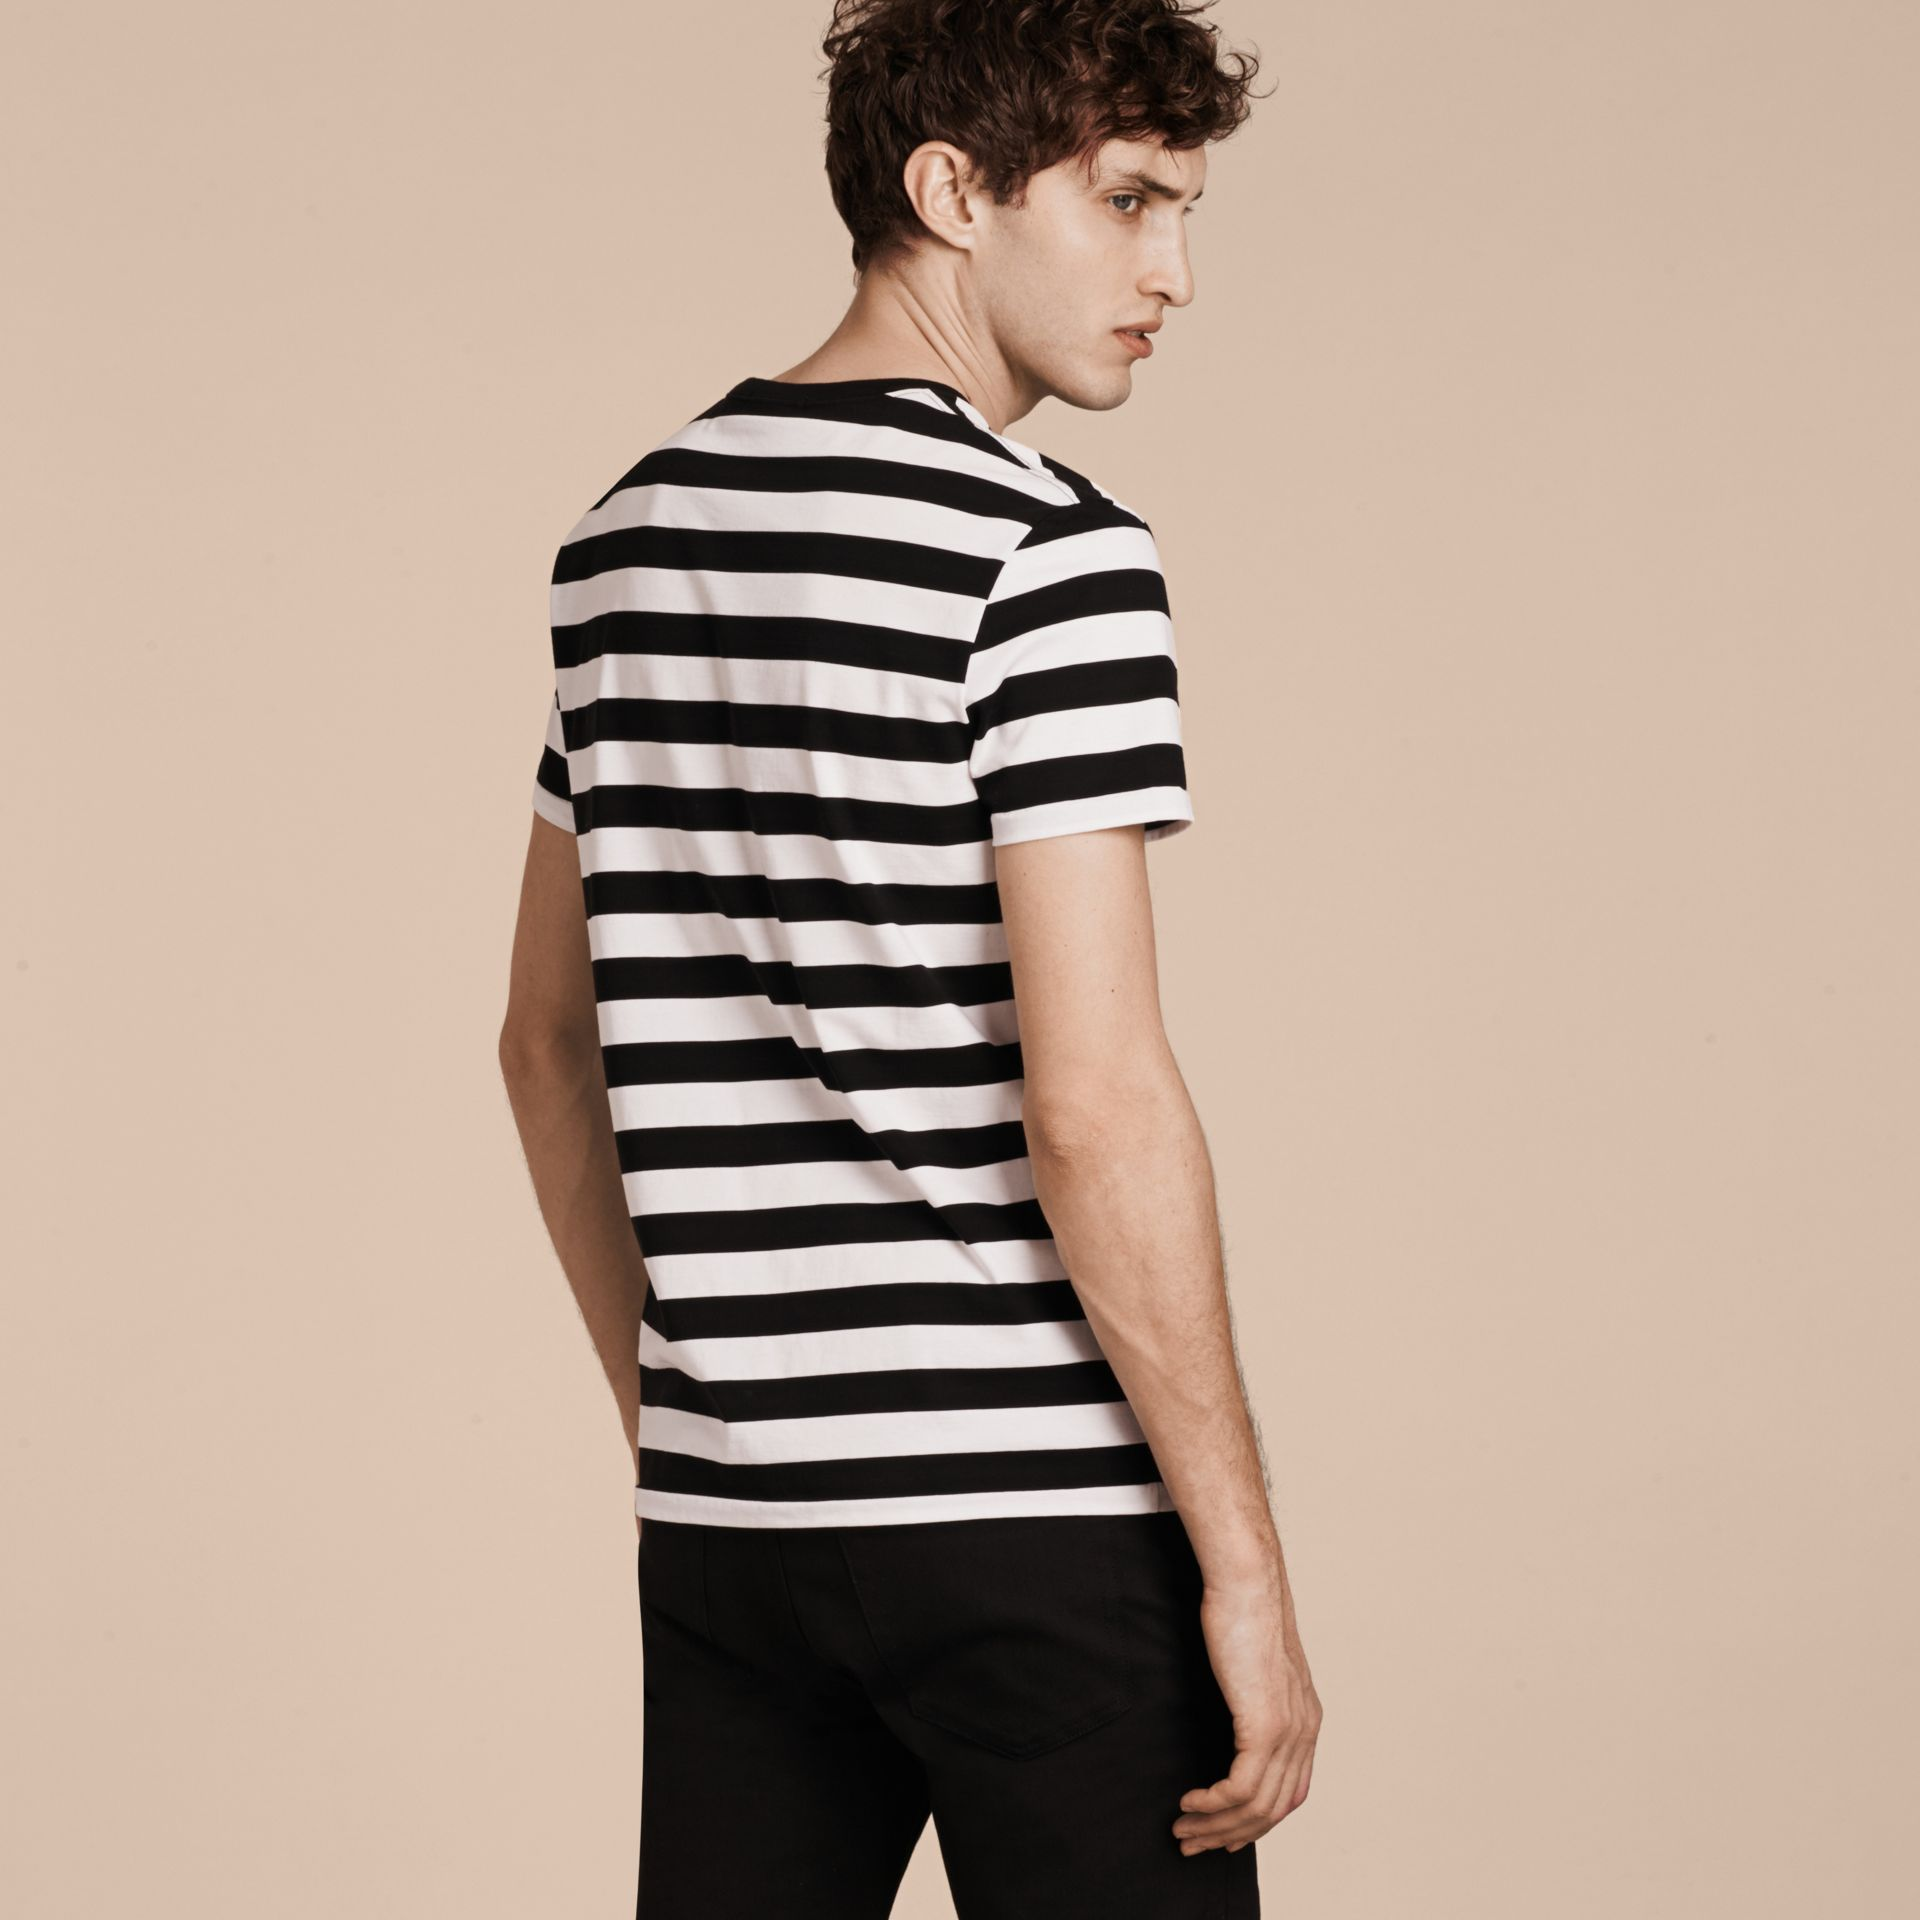 Black Striped Cotton T-Shirt Black - gallery image 3